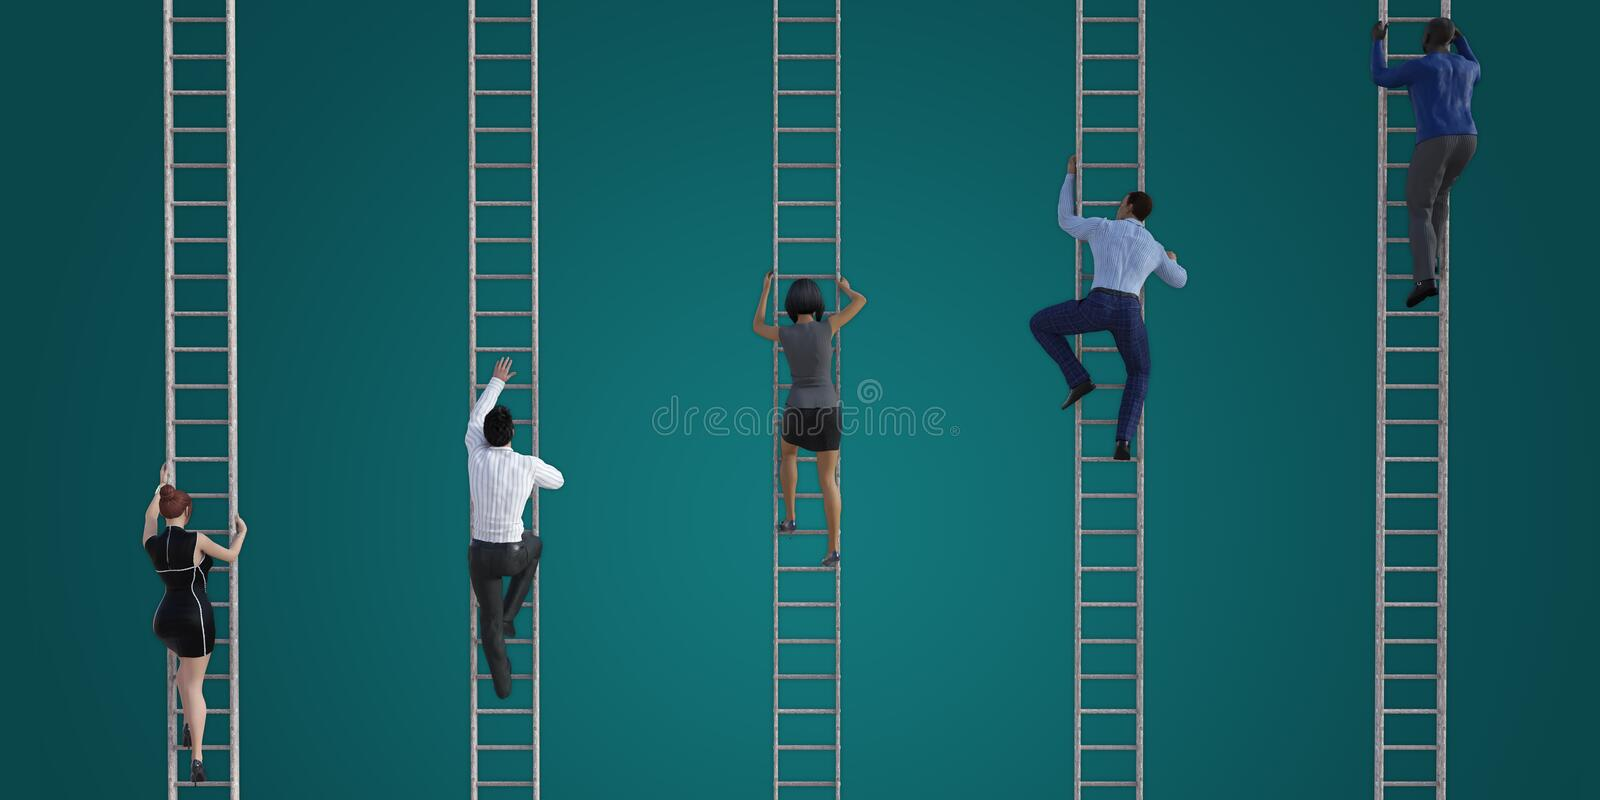 Joining the Rat Race. With Endless Climbing of Corporate Ladder stock illustration